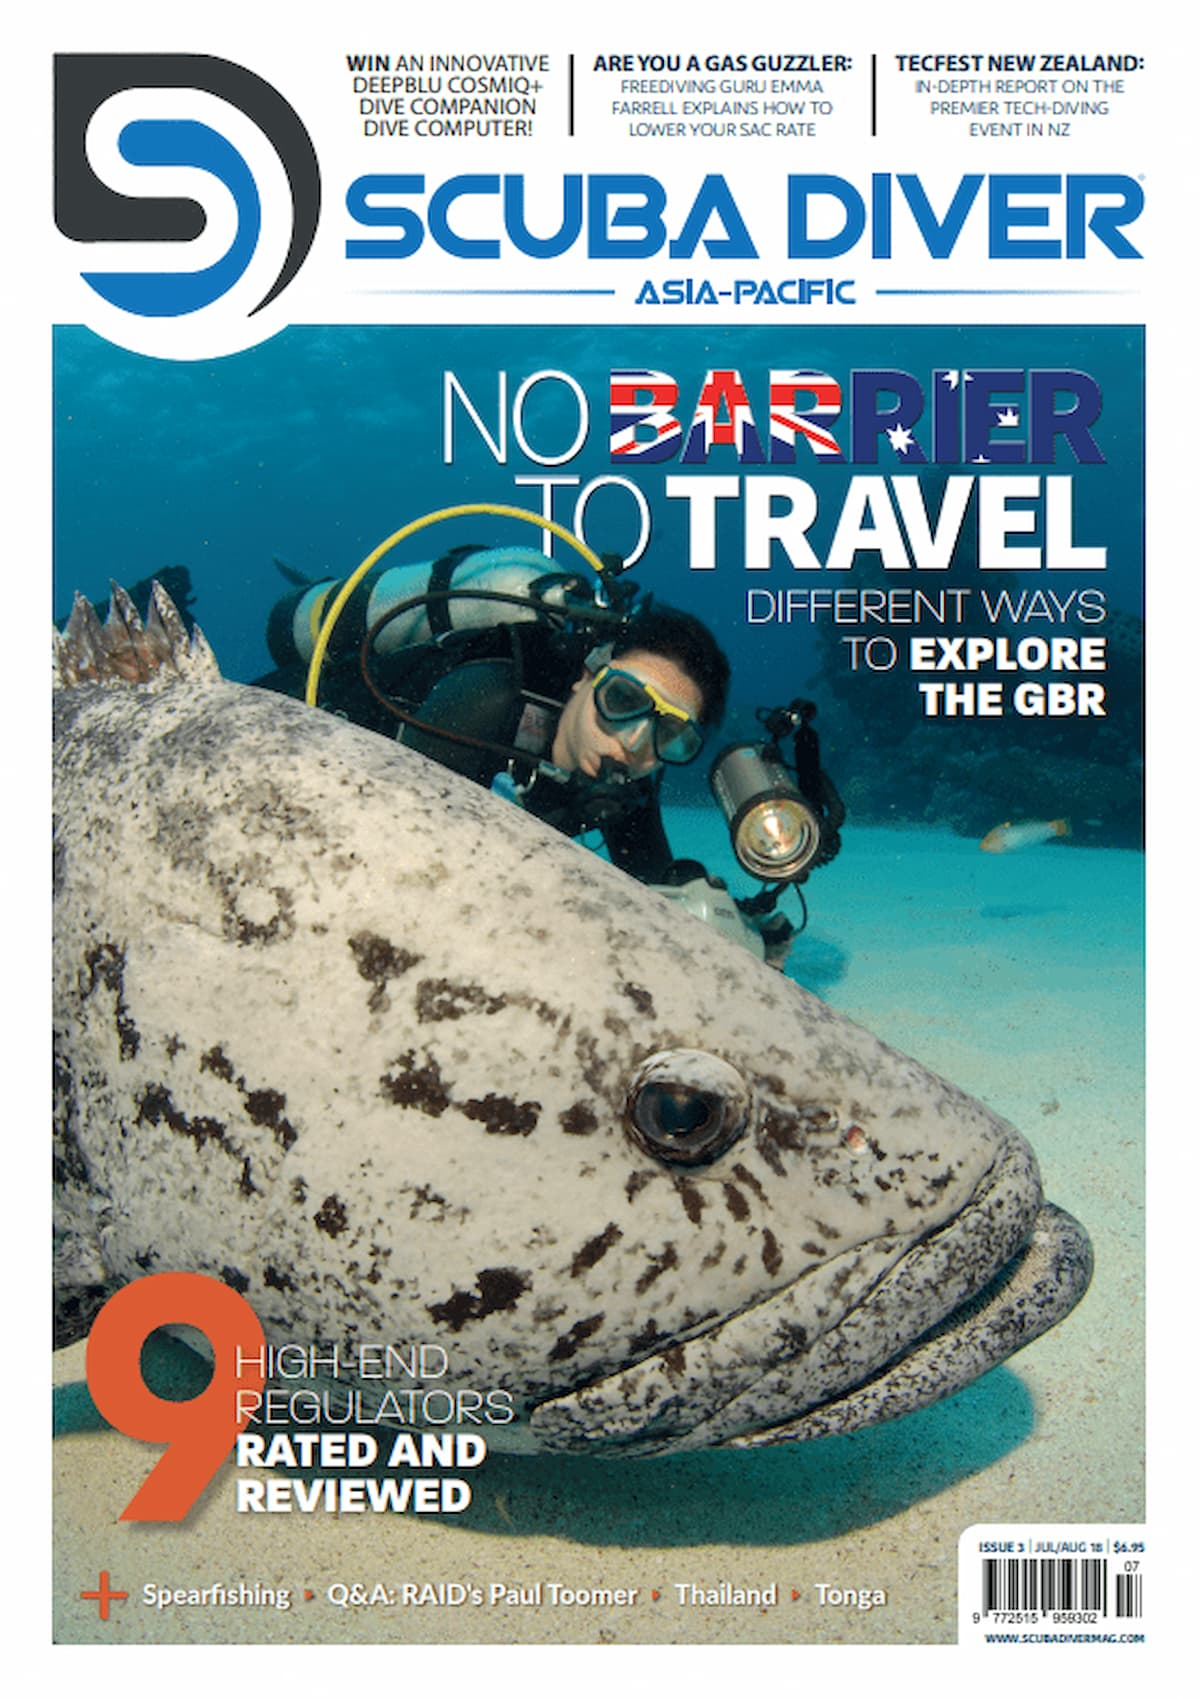 Scuba Diver Asia Pacific - Issue 3